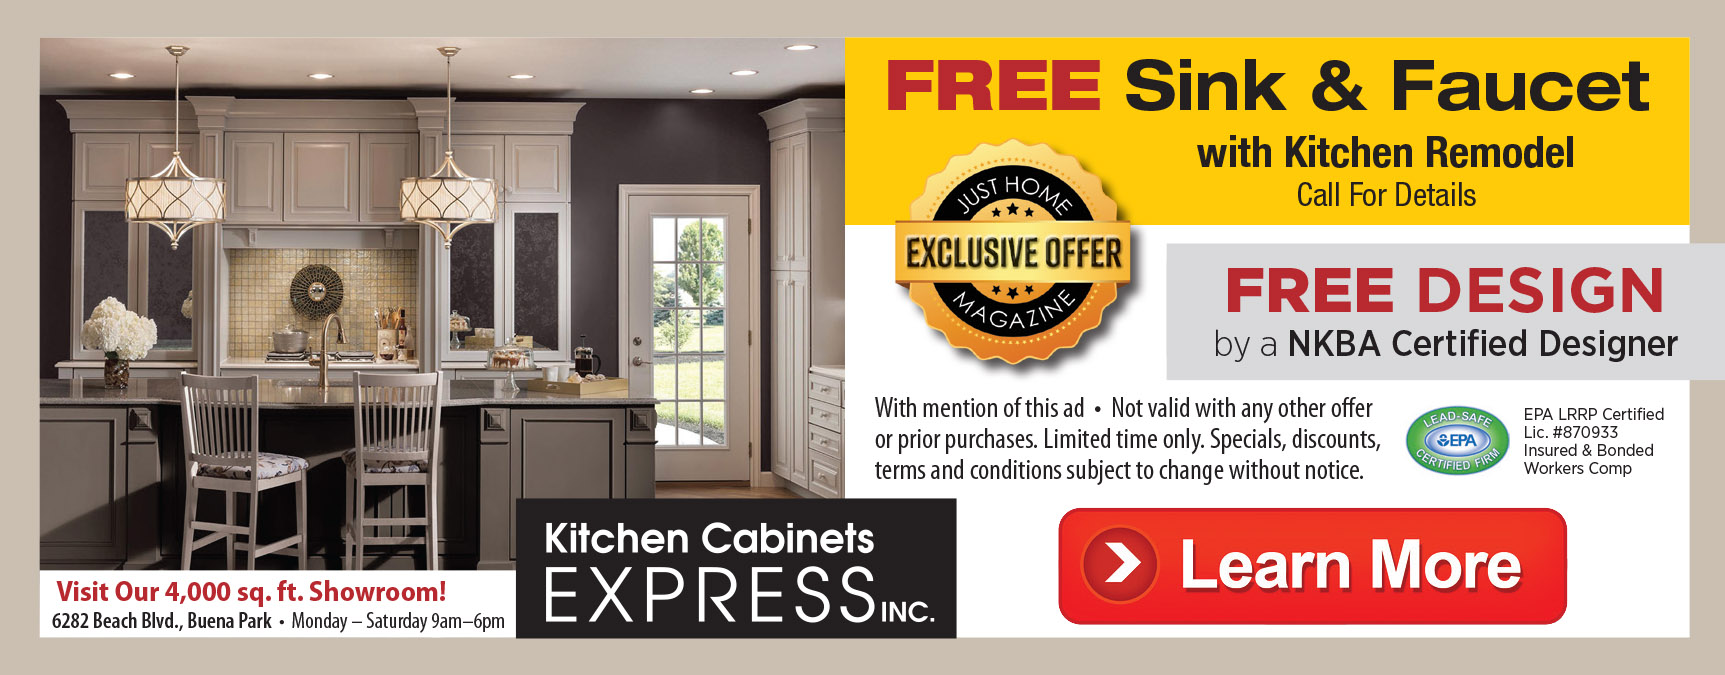 KitchCabExpress_Offer_Excl_06-18.jpg